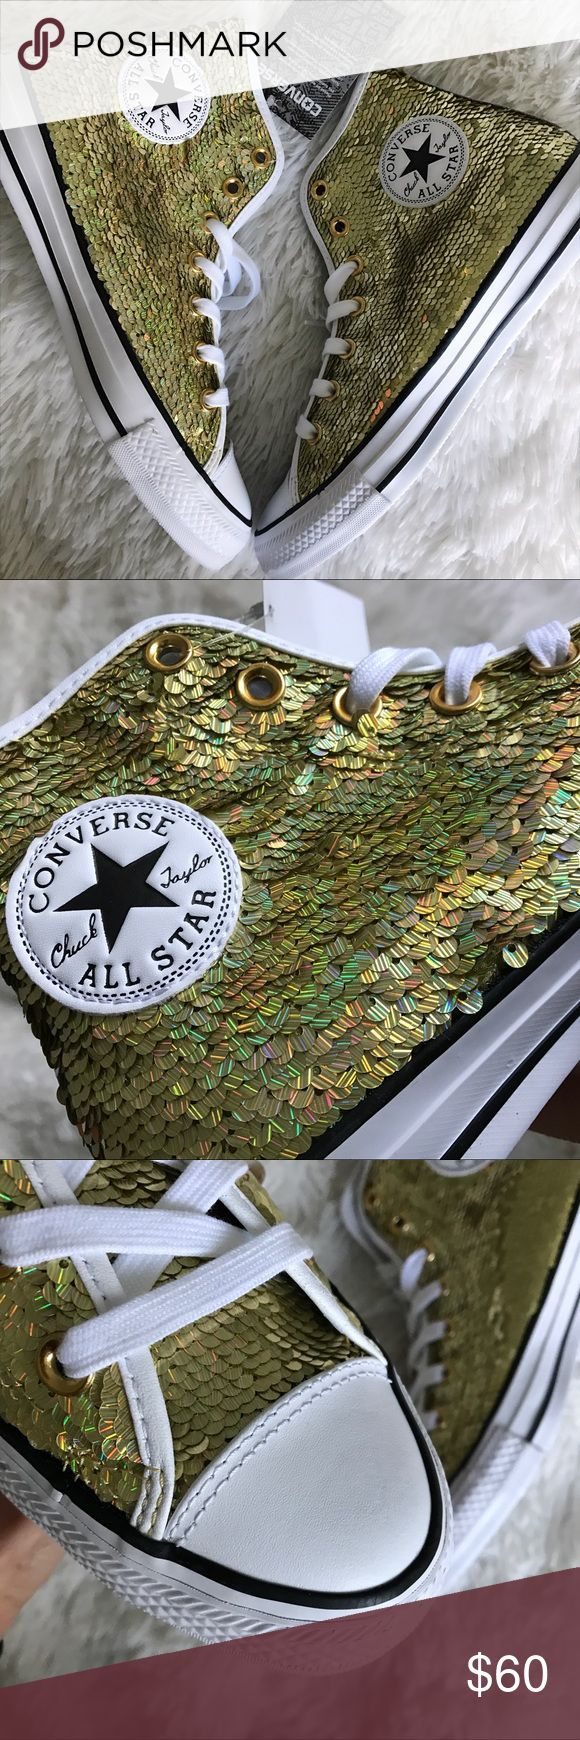 NEW ✨ CONVERSE CHUCK TAYLOR ALL STAR GOLD SEQUIN 8 NEW NEVER WORN ✨ CHUCK TAYLOR | ALL STAR CONVERSE. SIZE 8 WOMENS! (THIS IS NOT SIZED AS A MENS / UNISEX SHOE. IT IS A SIZE 8 WOMEN 24.5 cm)   Take your chucks game to a whole new level with these ✨ ICONIC ALLSTARS WITH LOTS OF SHINE & LEATHER DETAILING!!   Ships same or next day from my smoke free home. No original box. Will be shipped securely.   Bundle items to save. Shop with posh and don't pay the sales tax! 🤑  100% AUTHENTIC AND DIRECT…